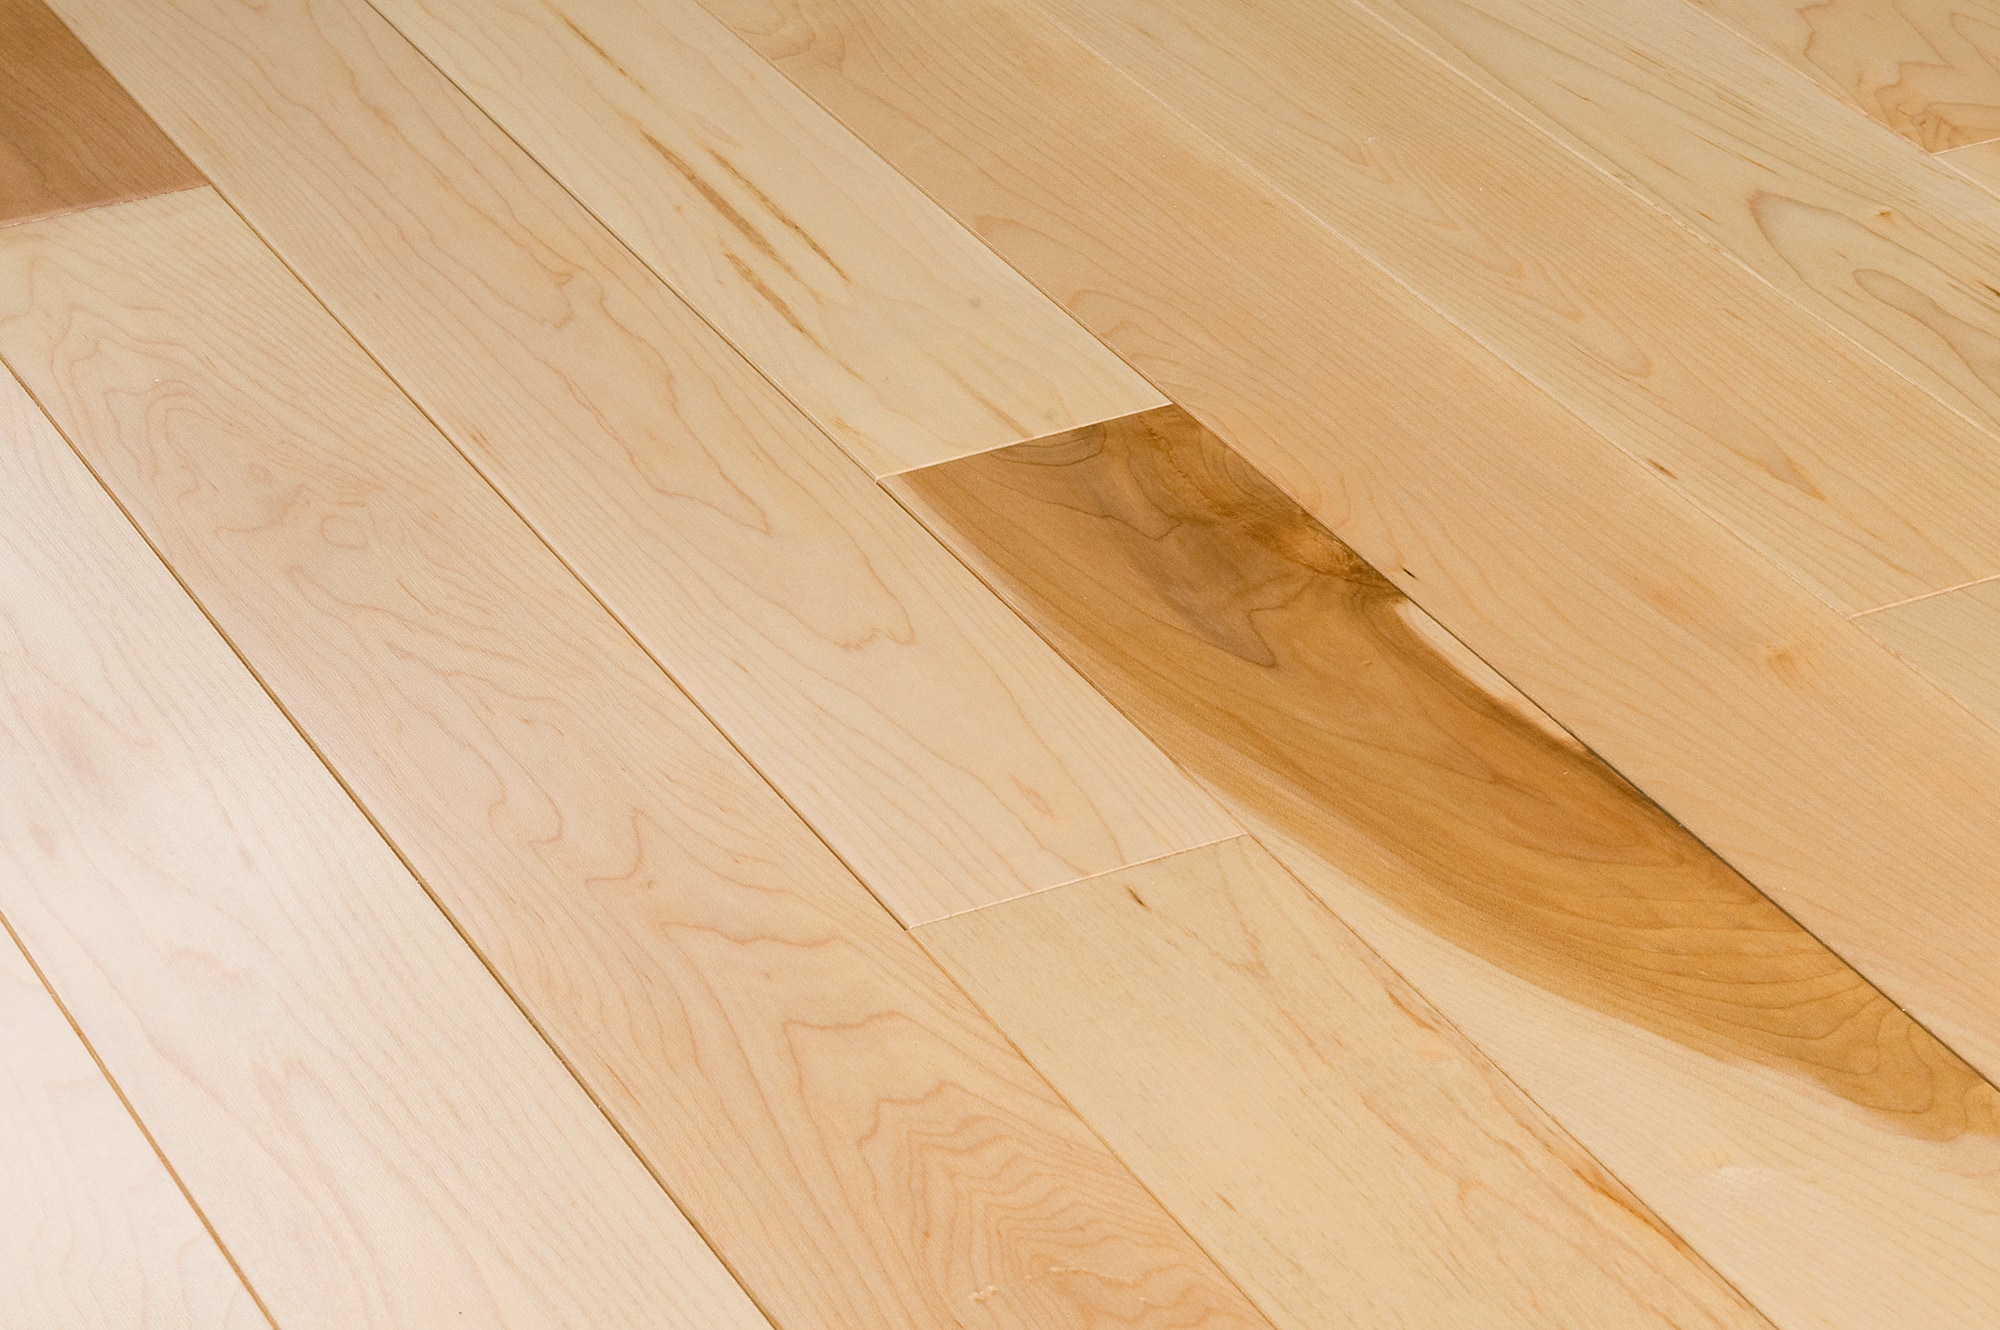 Jasper hardwood prefinished canadian hard maple for Maple hardwood flooring